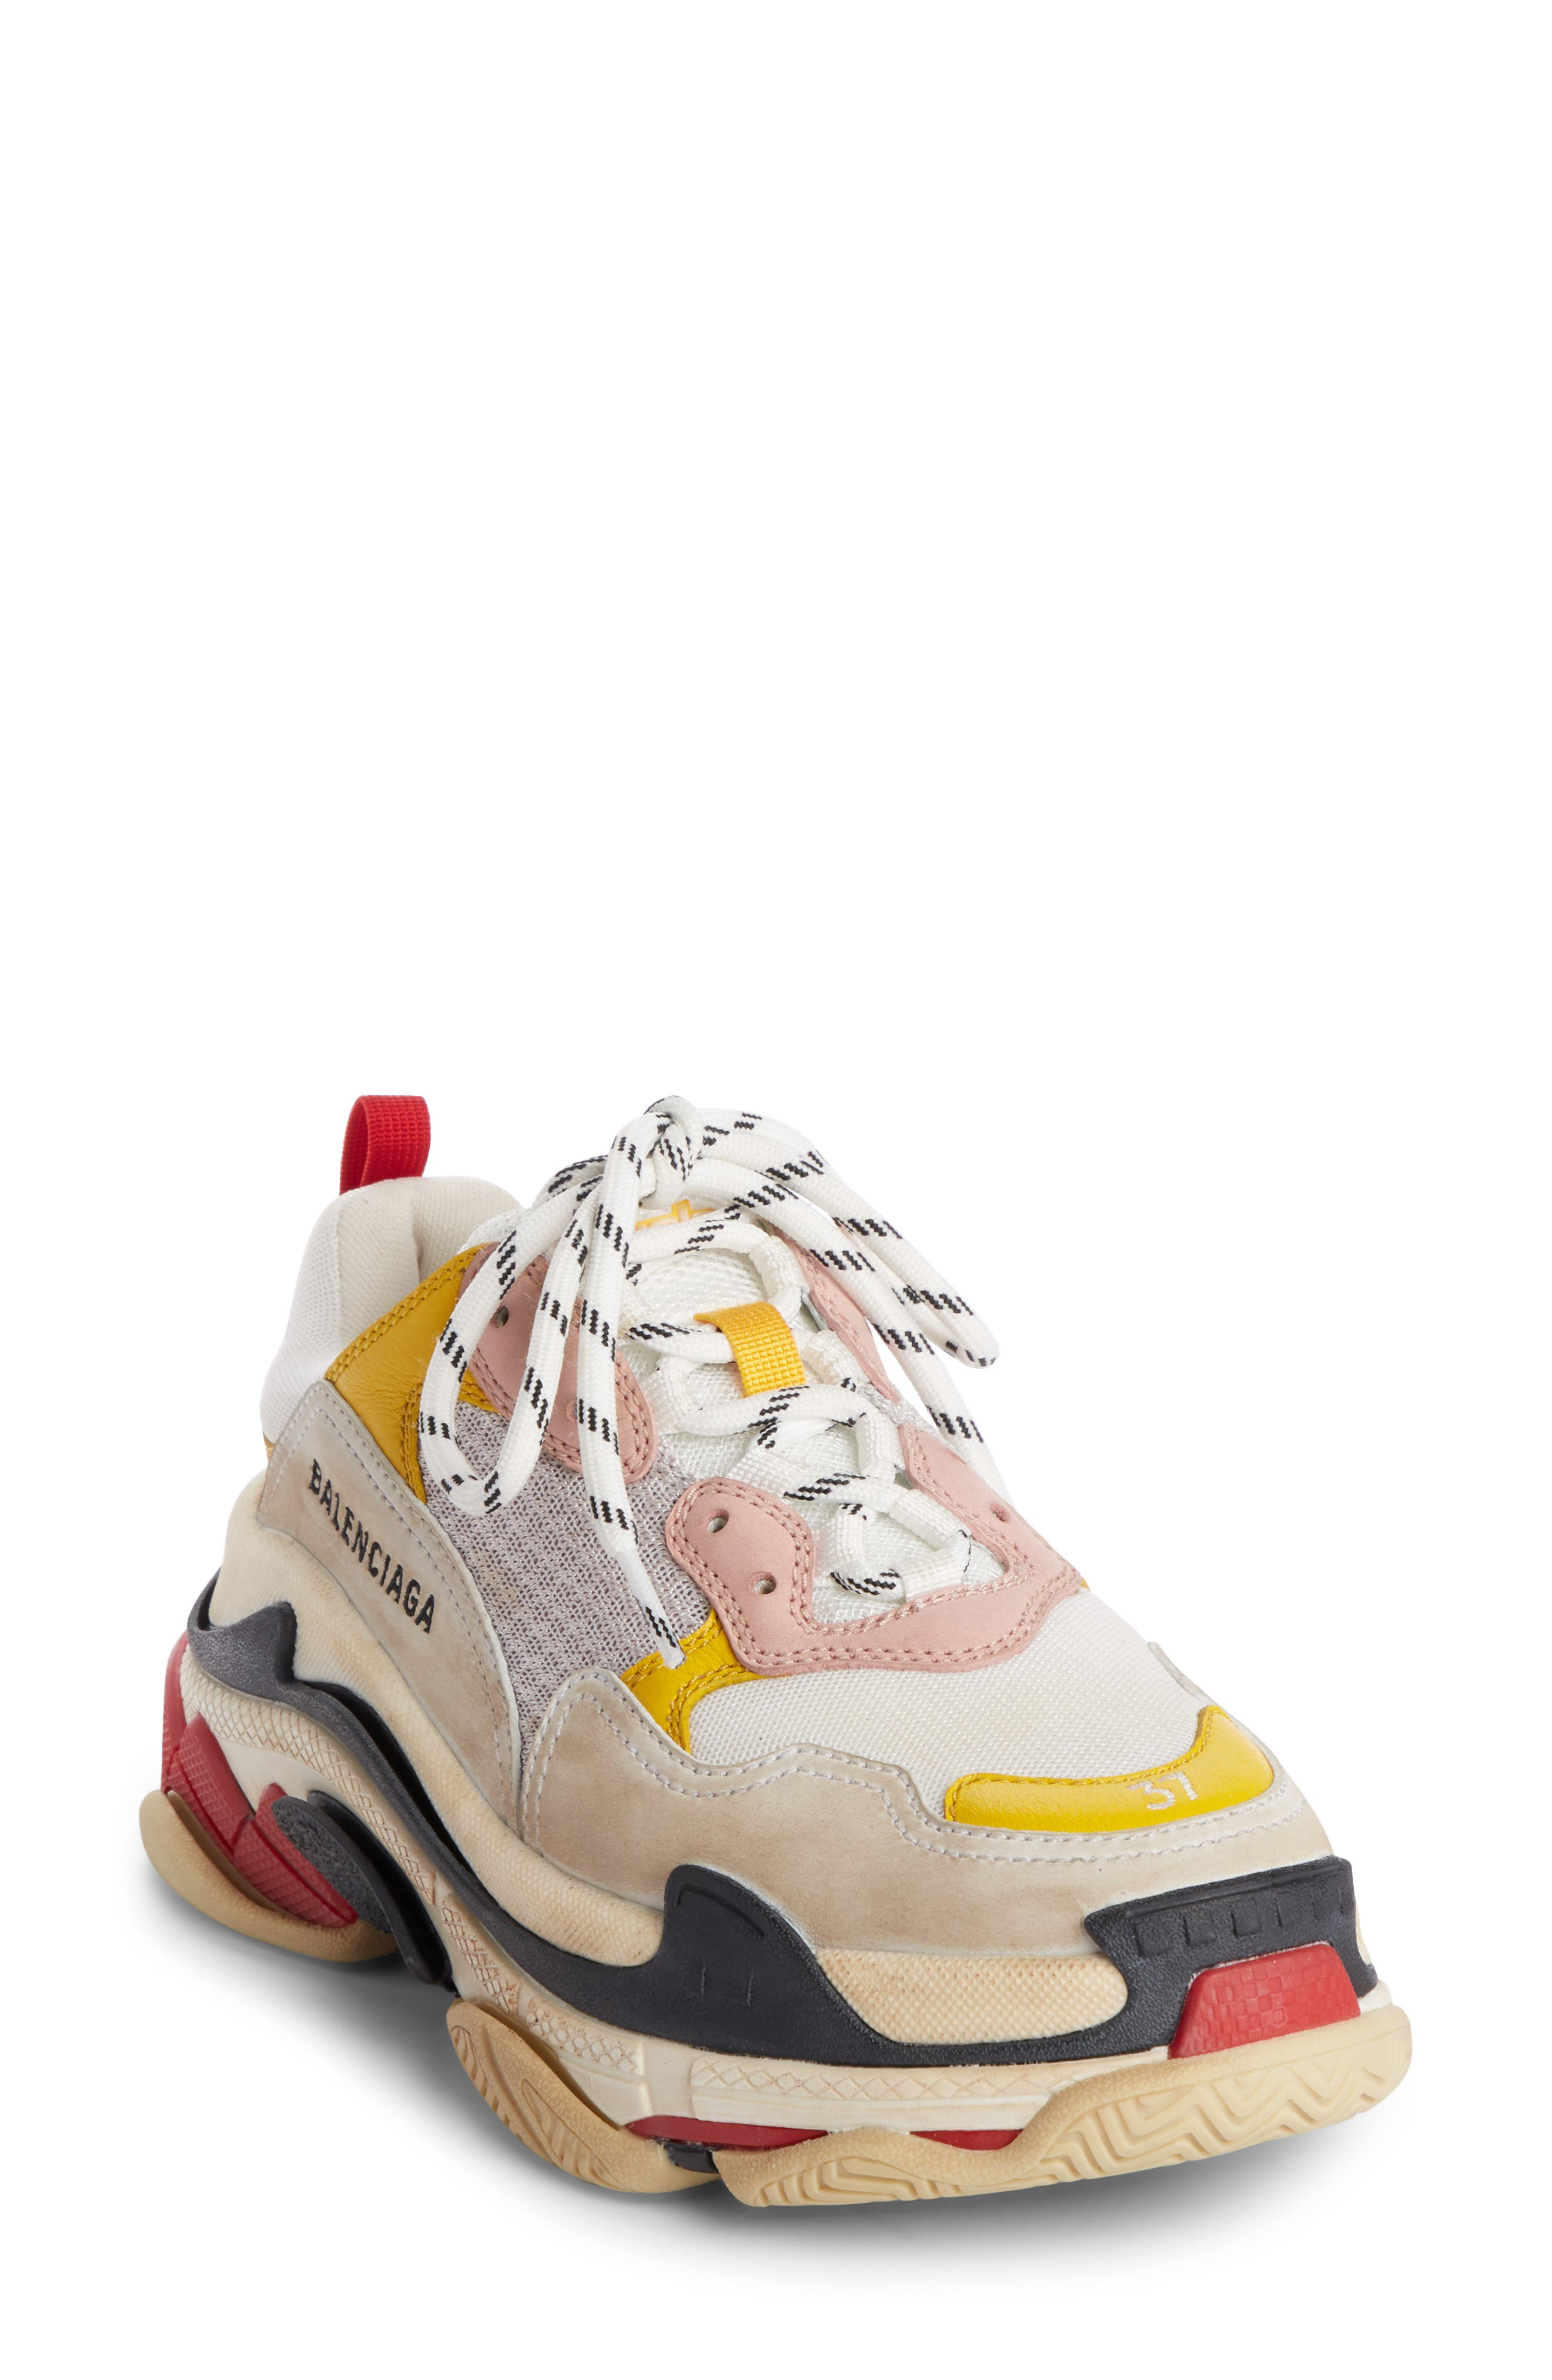 15c389f106 ... ireland balenciaga triple s logo embroidered leather nubuck and mesh  sneakers in white 41ee7 270e4